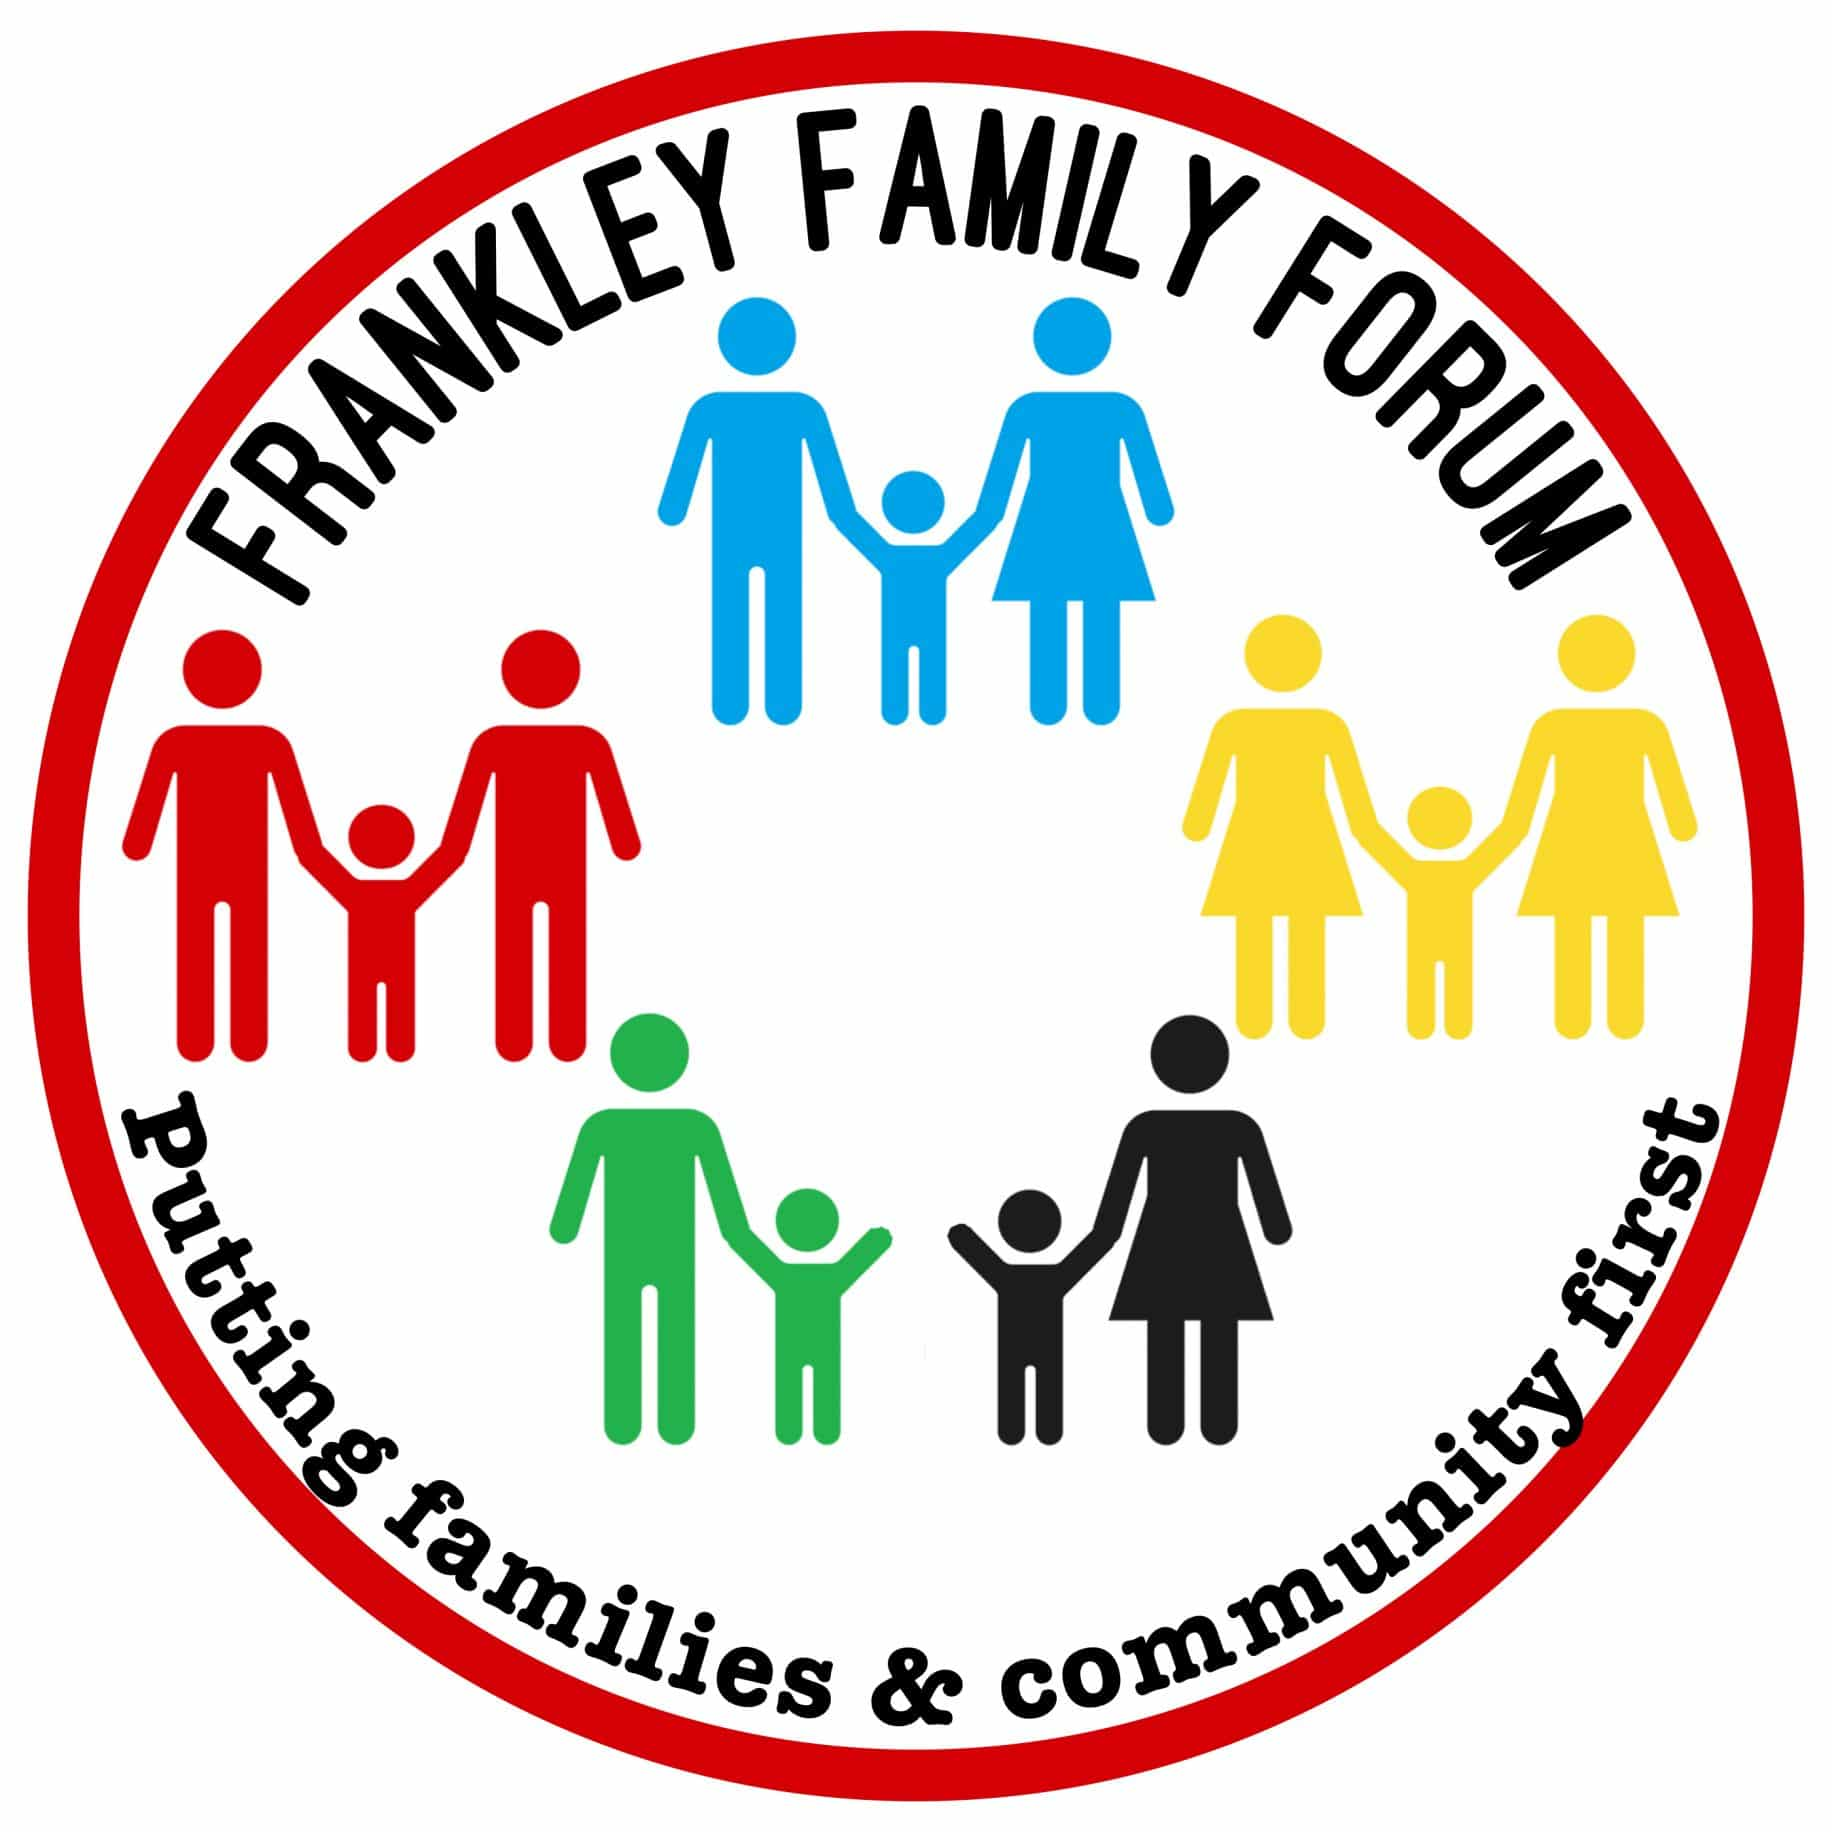 Frankley Family Forum